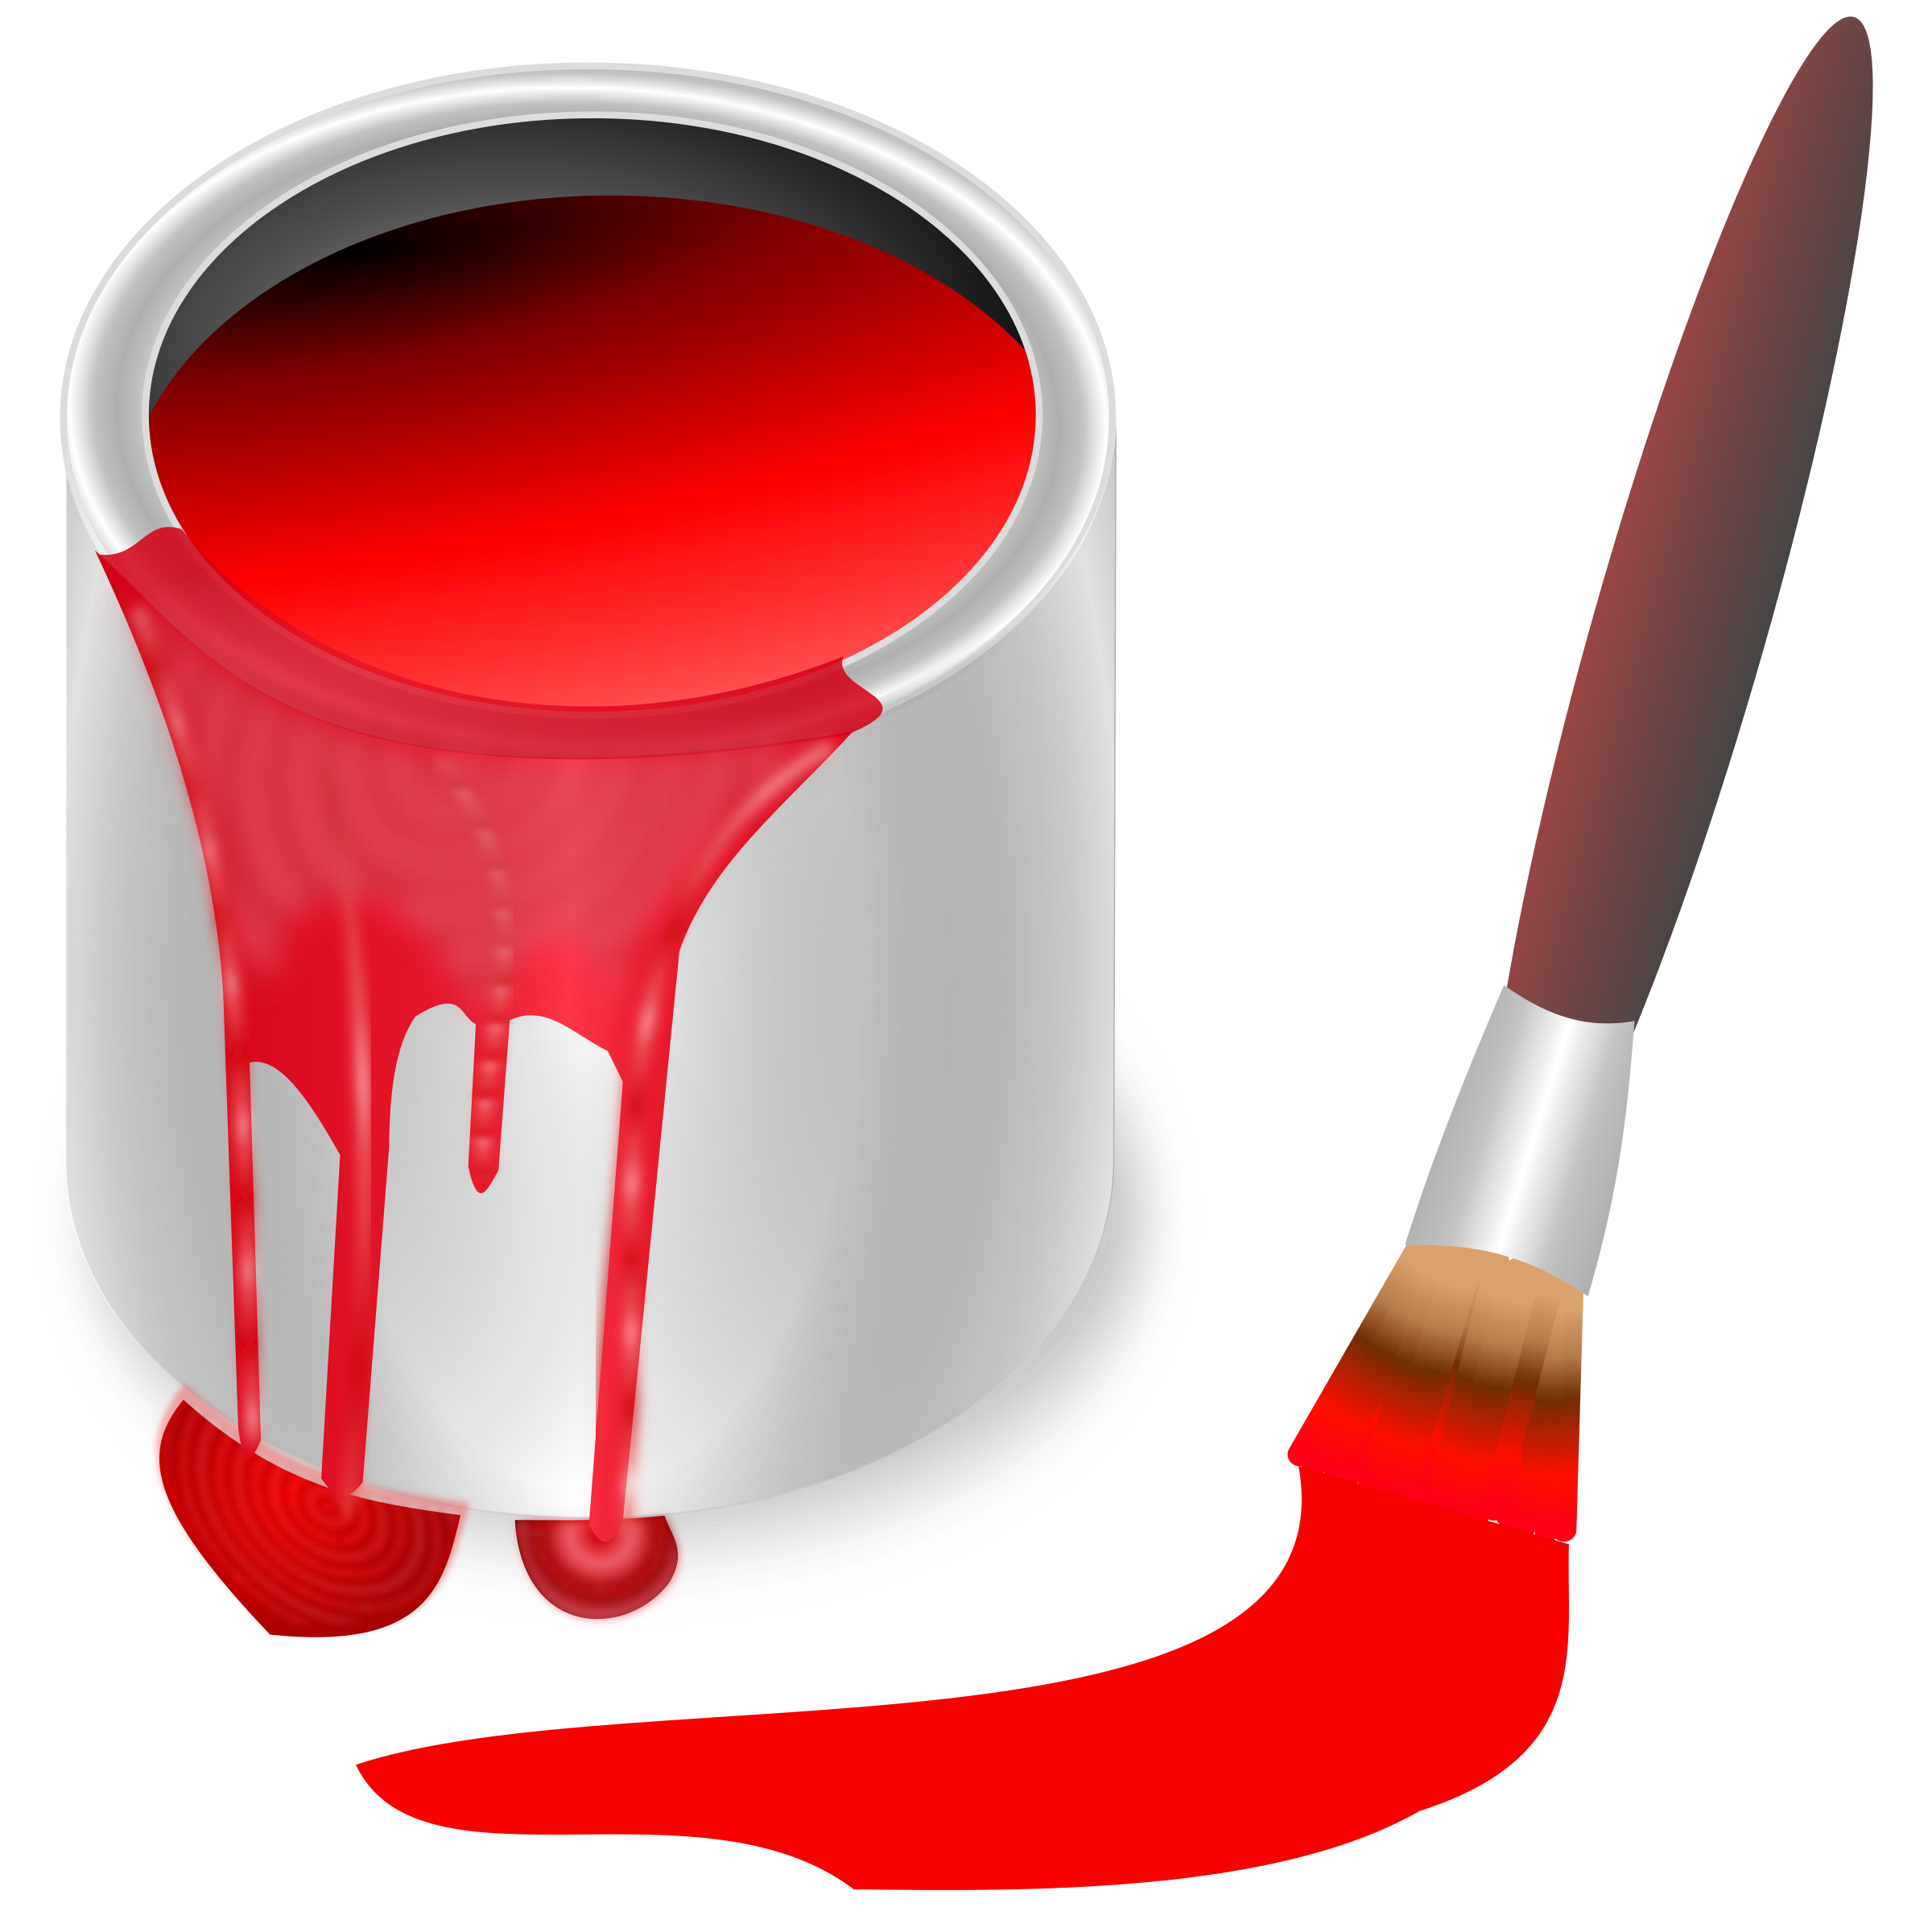 Color big image png. Bucket clipart red bucket